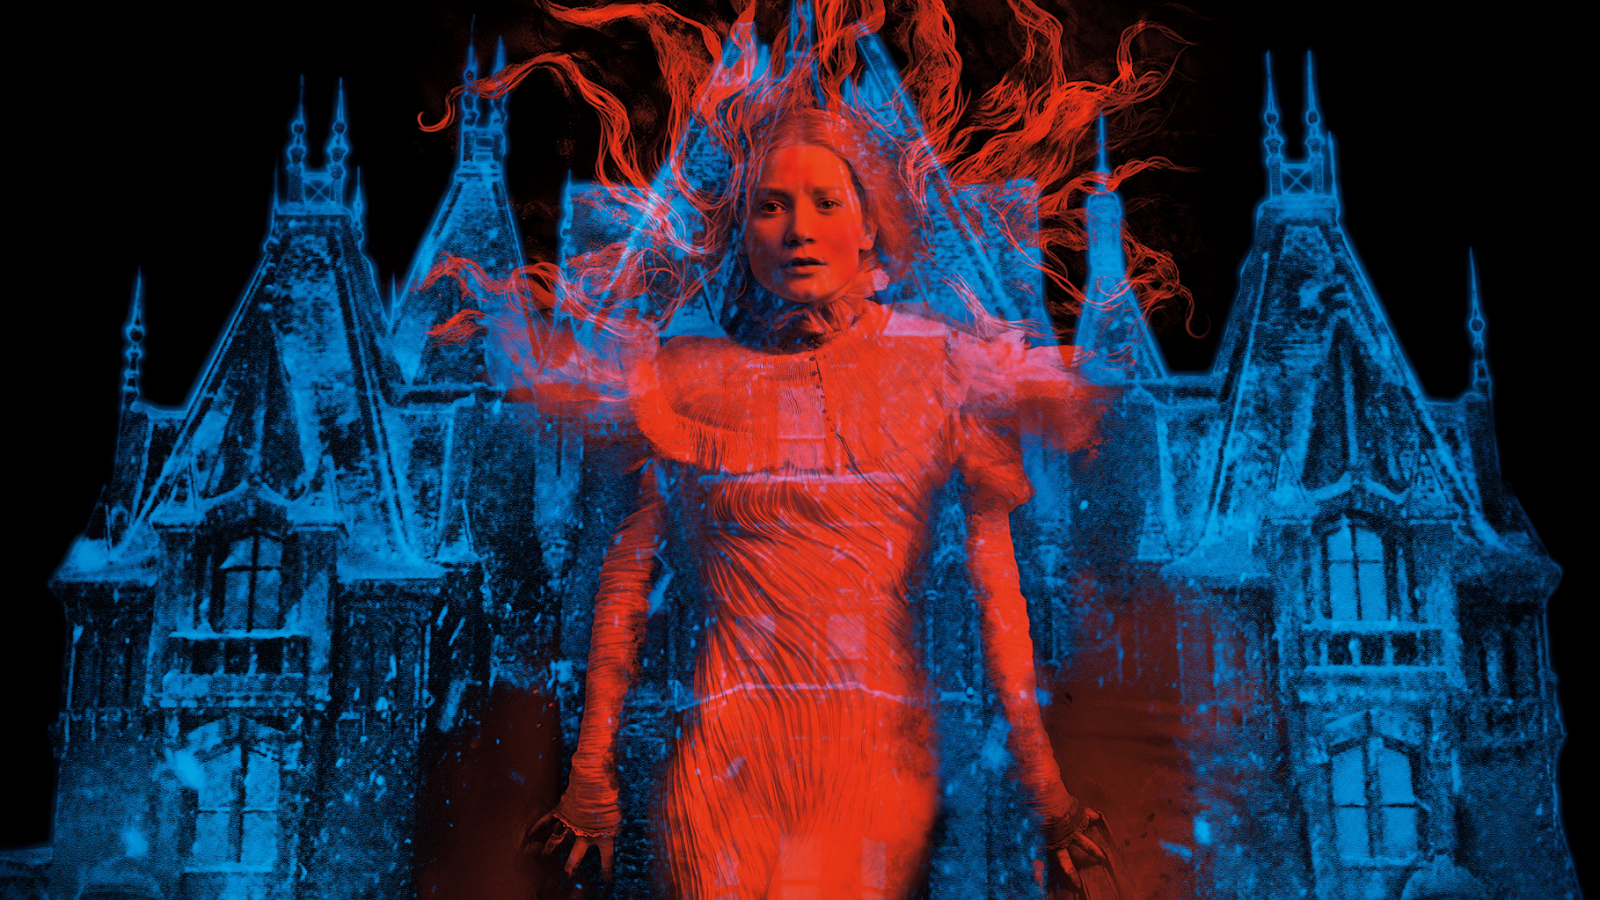 Crimson Peak Edith Cushing Mia Wasikowska